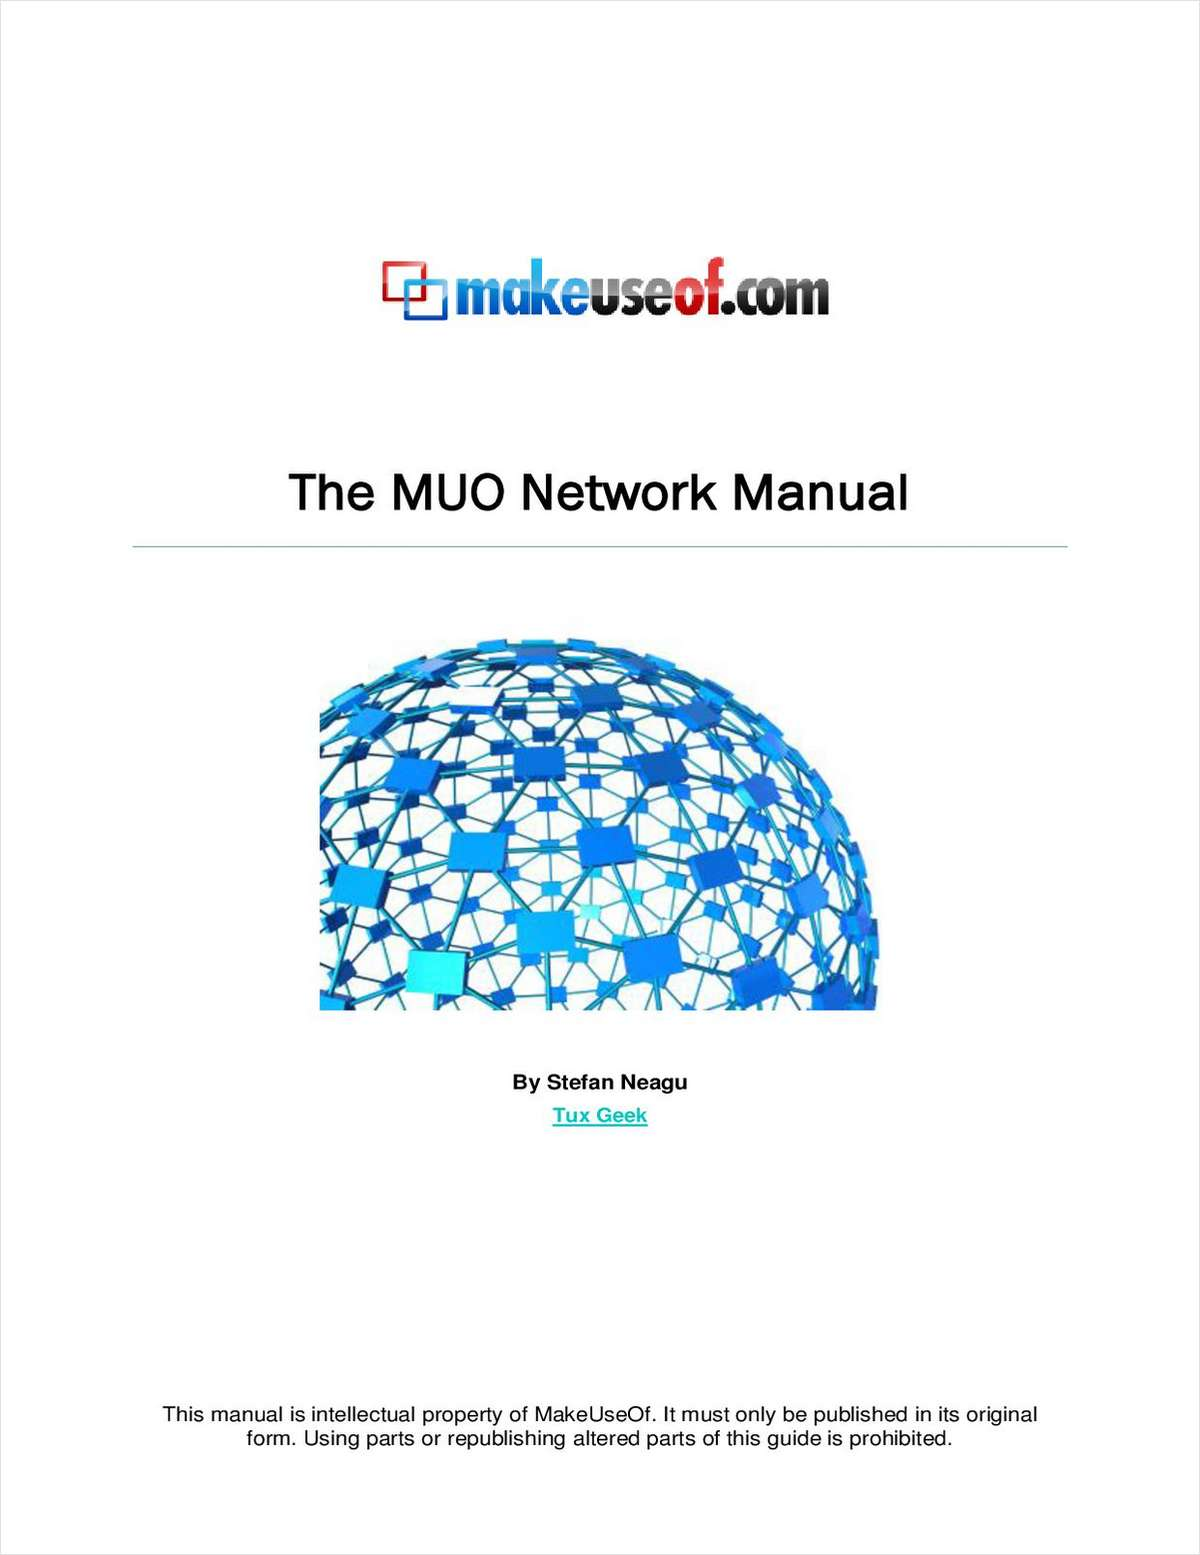 The Easy Guide To Computer Networks